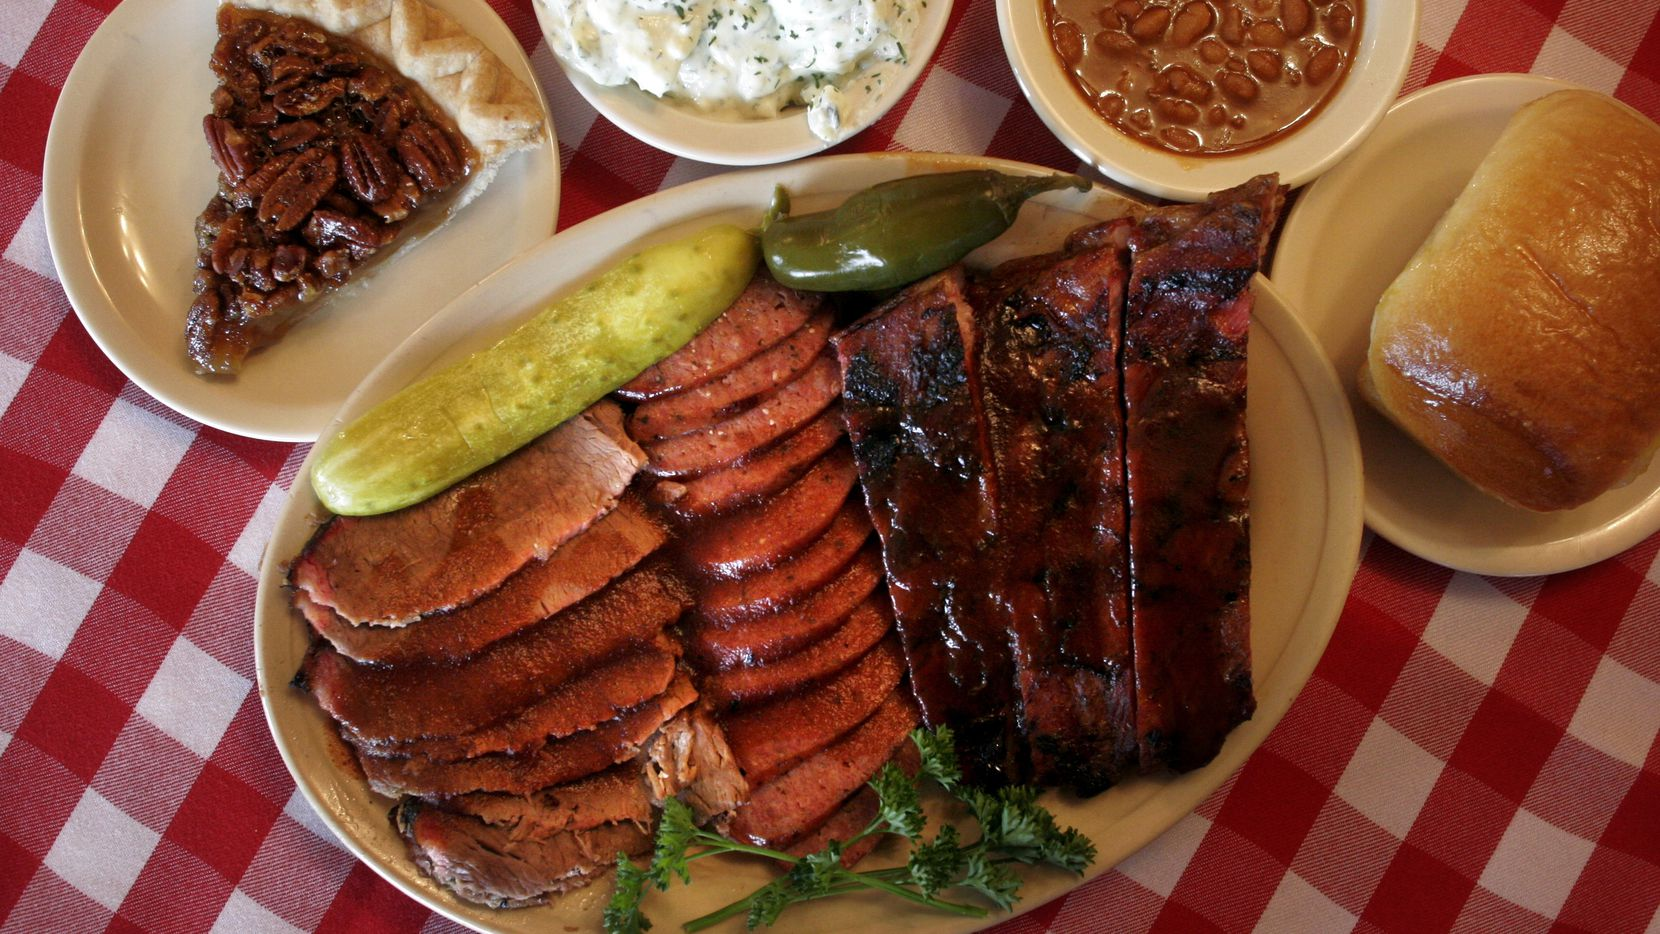 A sampling of fare from Dickey's Barbecue Pit.